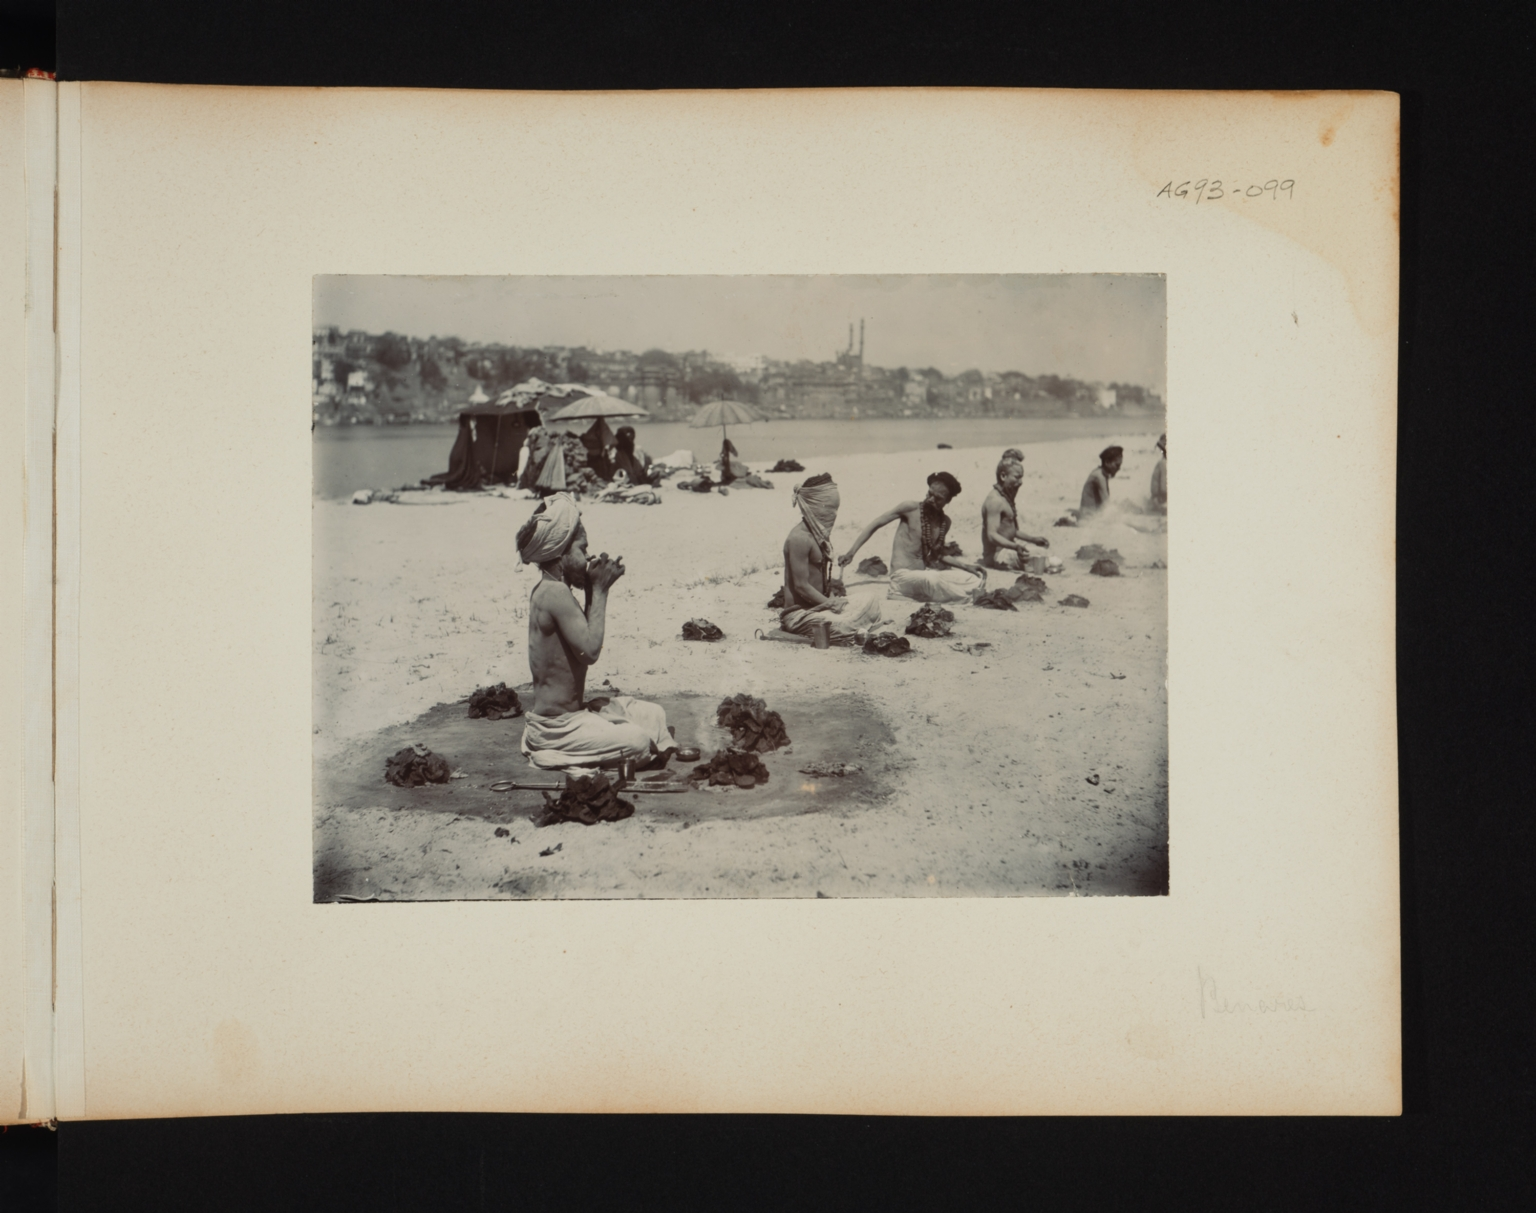 Five seated Fakirs surrounded by small fires in Benares, India.